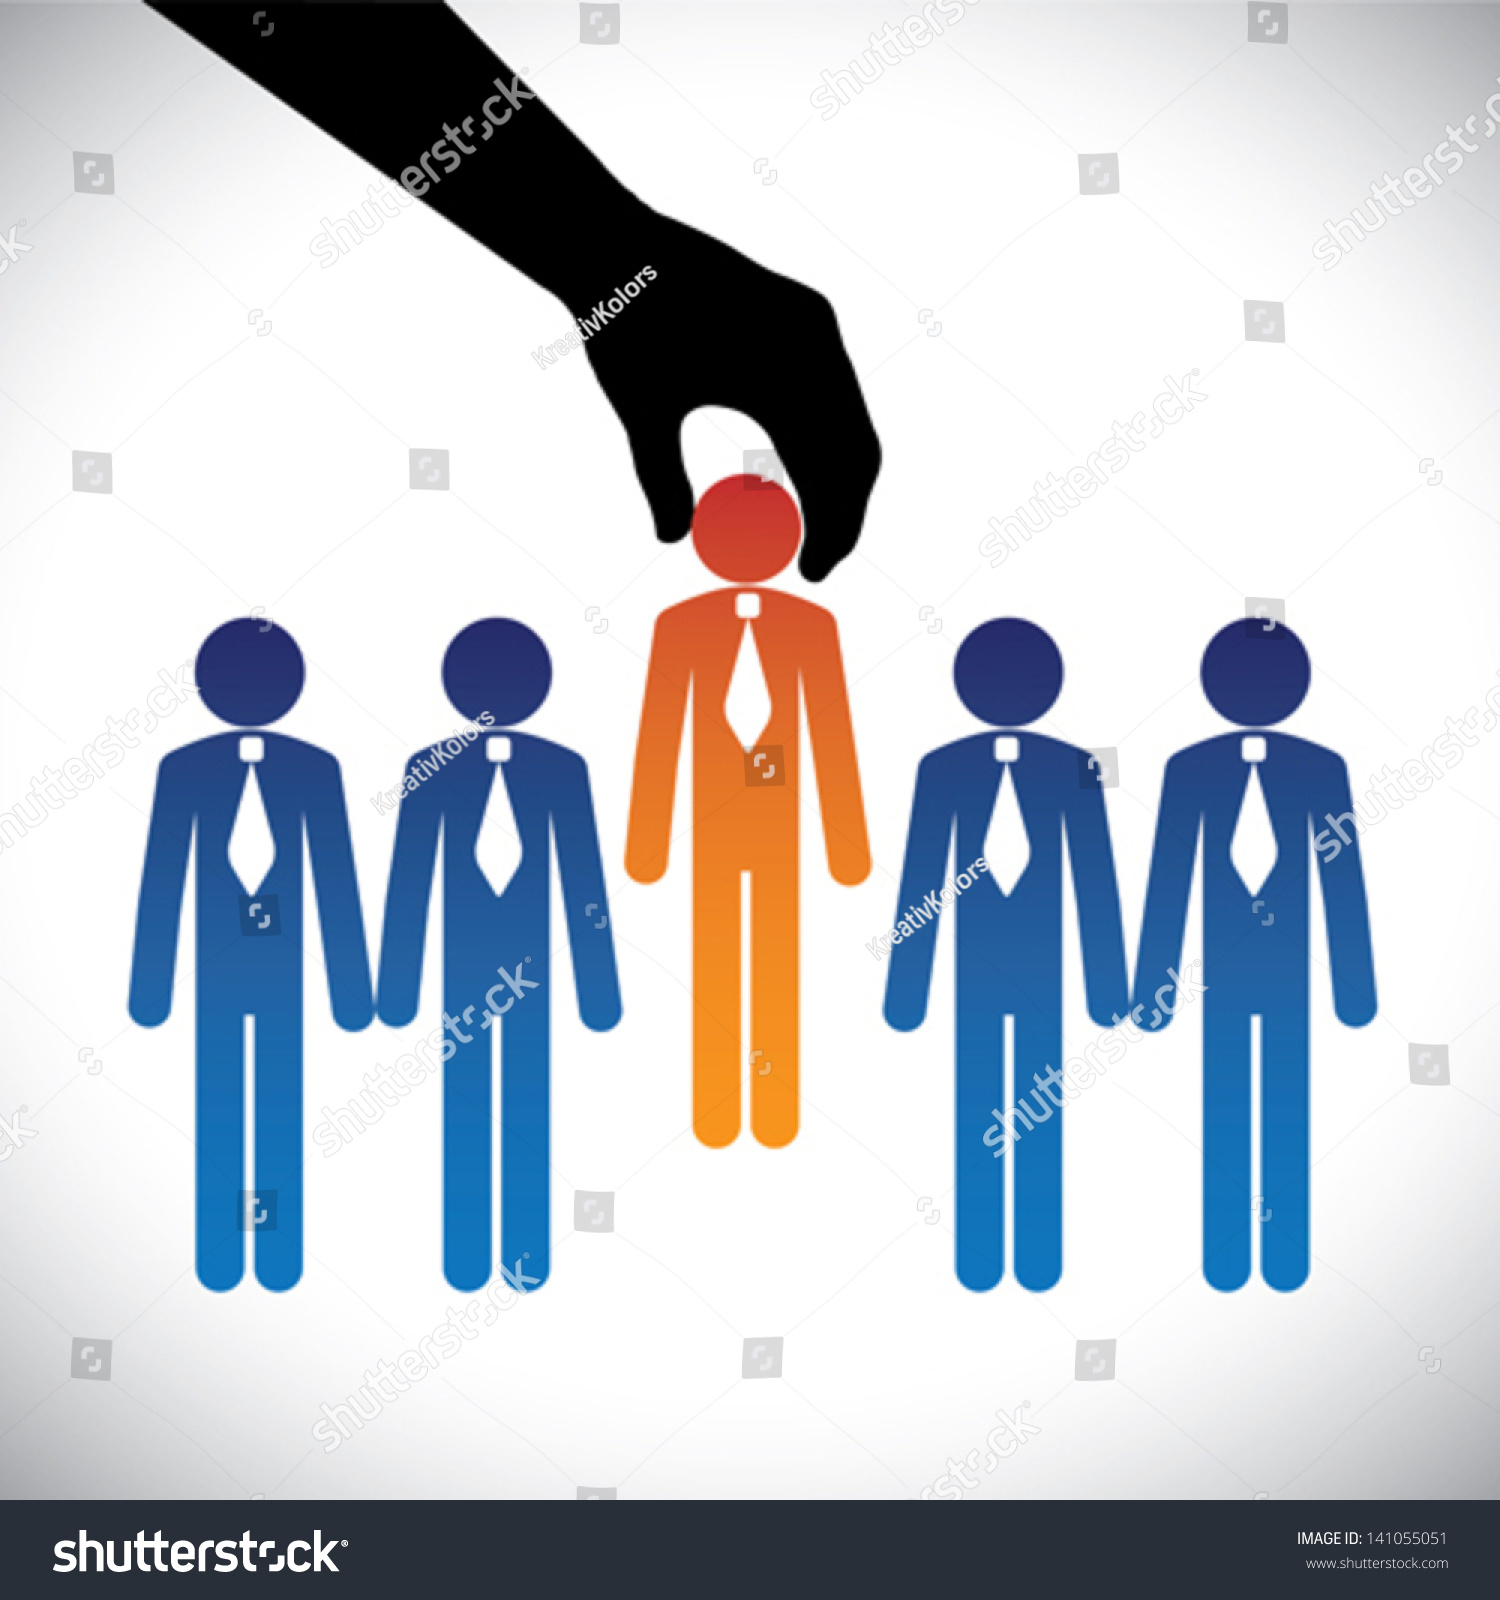 concept vector graphic hiring selecting best stock vector concept vector graphic hiring selecting the best job candidate the graphic shows